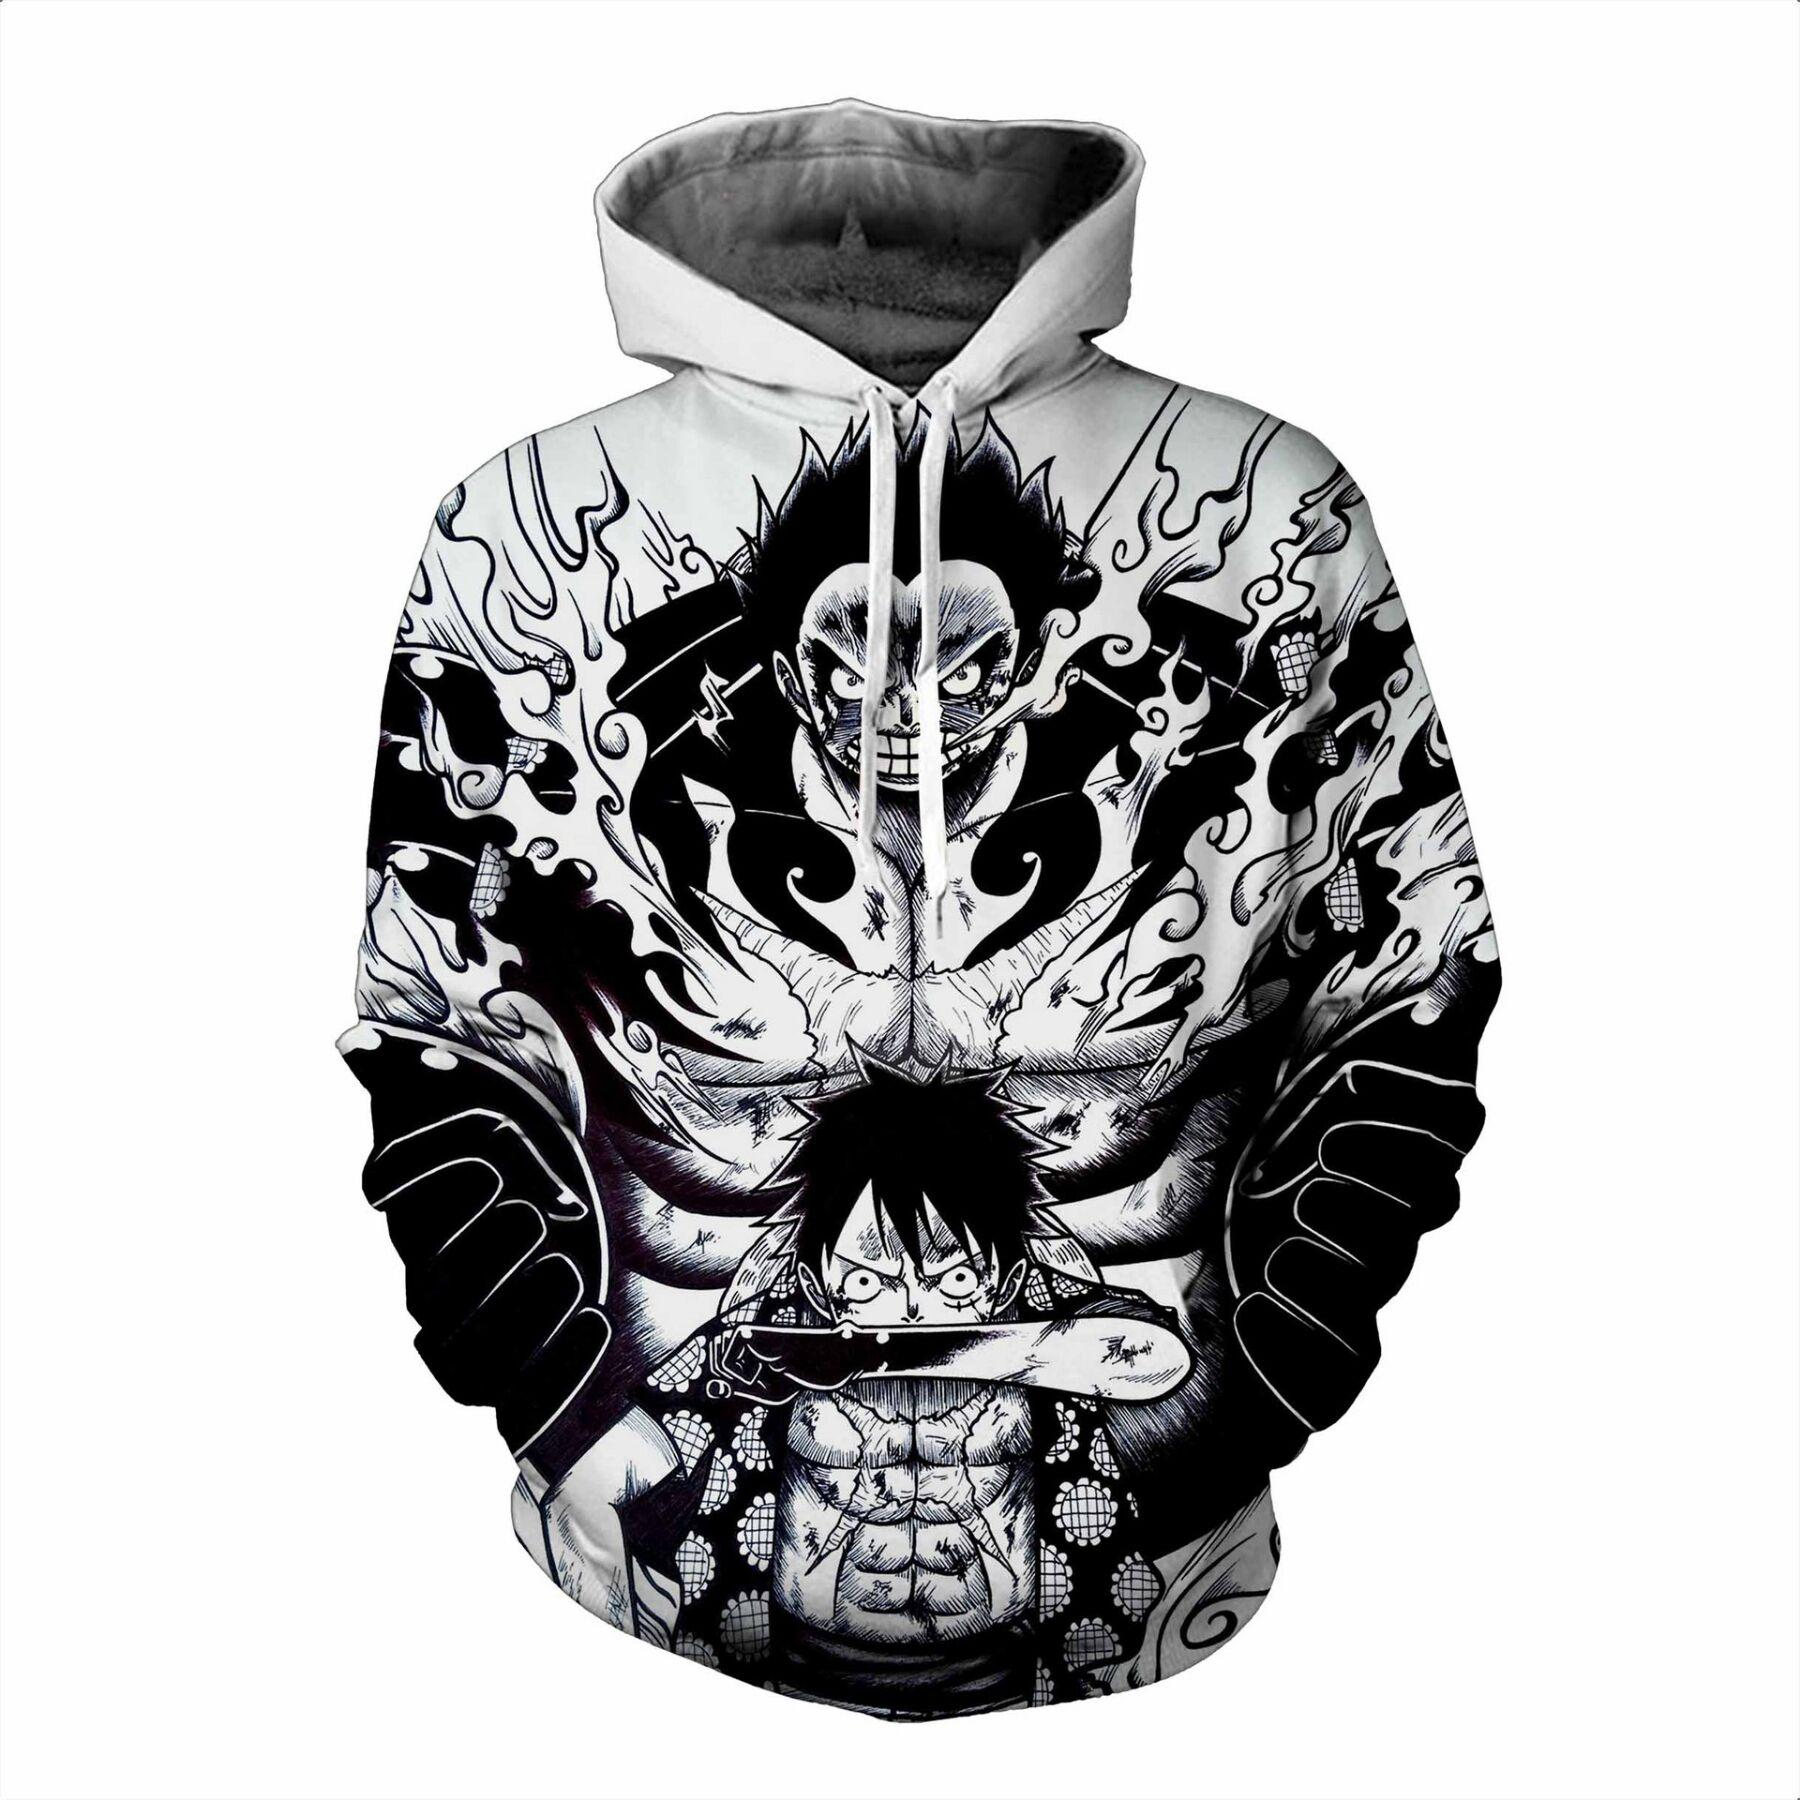 One Piece Hoodies Monkey D Luffy Men Sweatshirts Hooded Pullover Sweatshirt Male/women Sudaderas Anime Hoodie Tracksuit Xs-4xl Hoodies & Sweatshirts